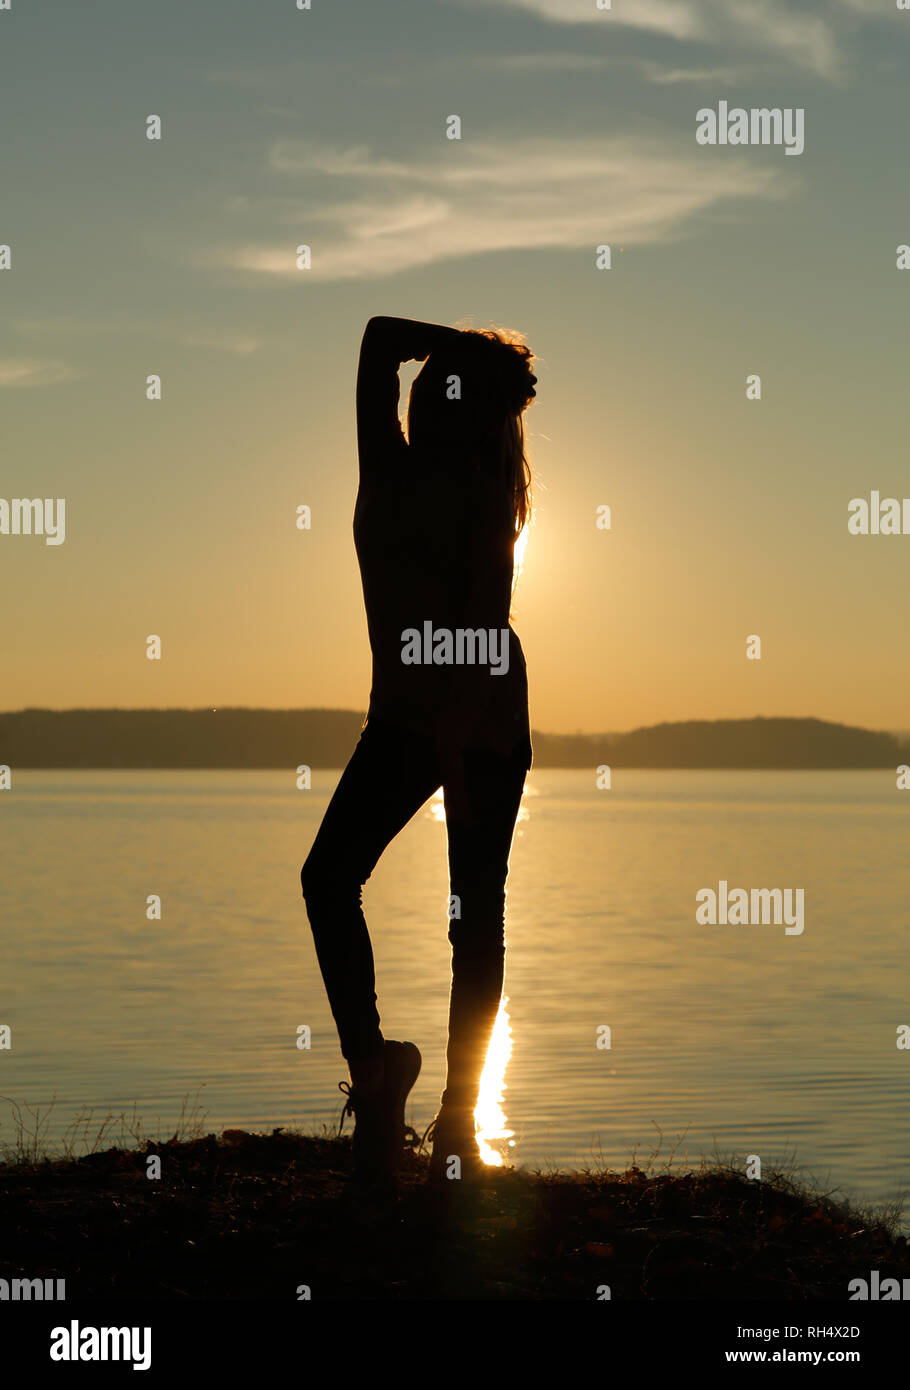 Girl with a beautiful figure at sunset standing posing - Stock Image